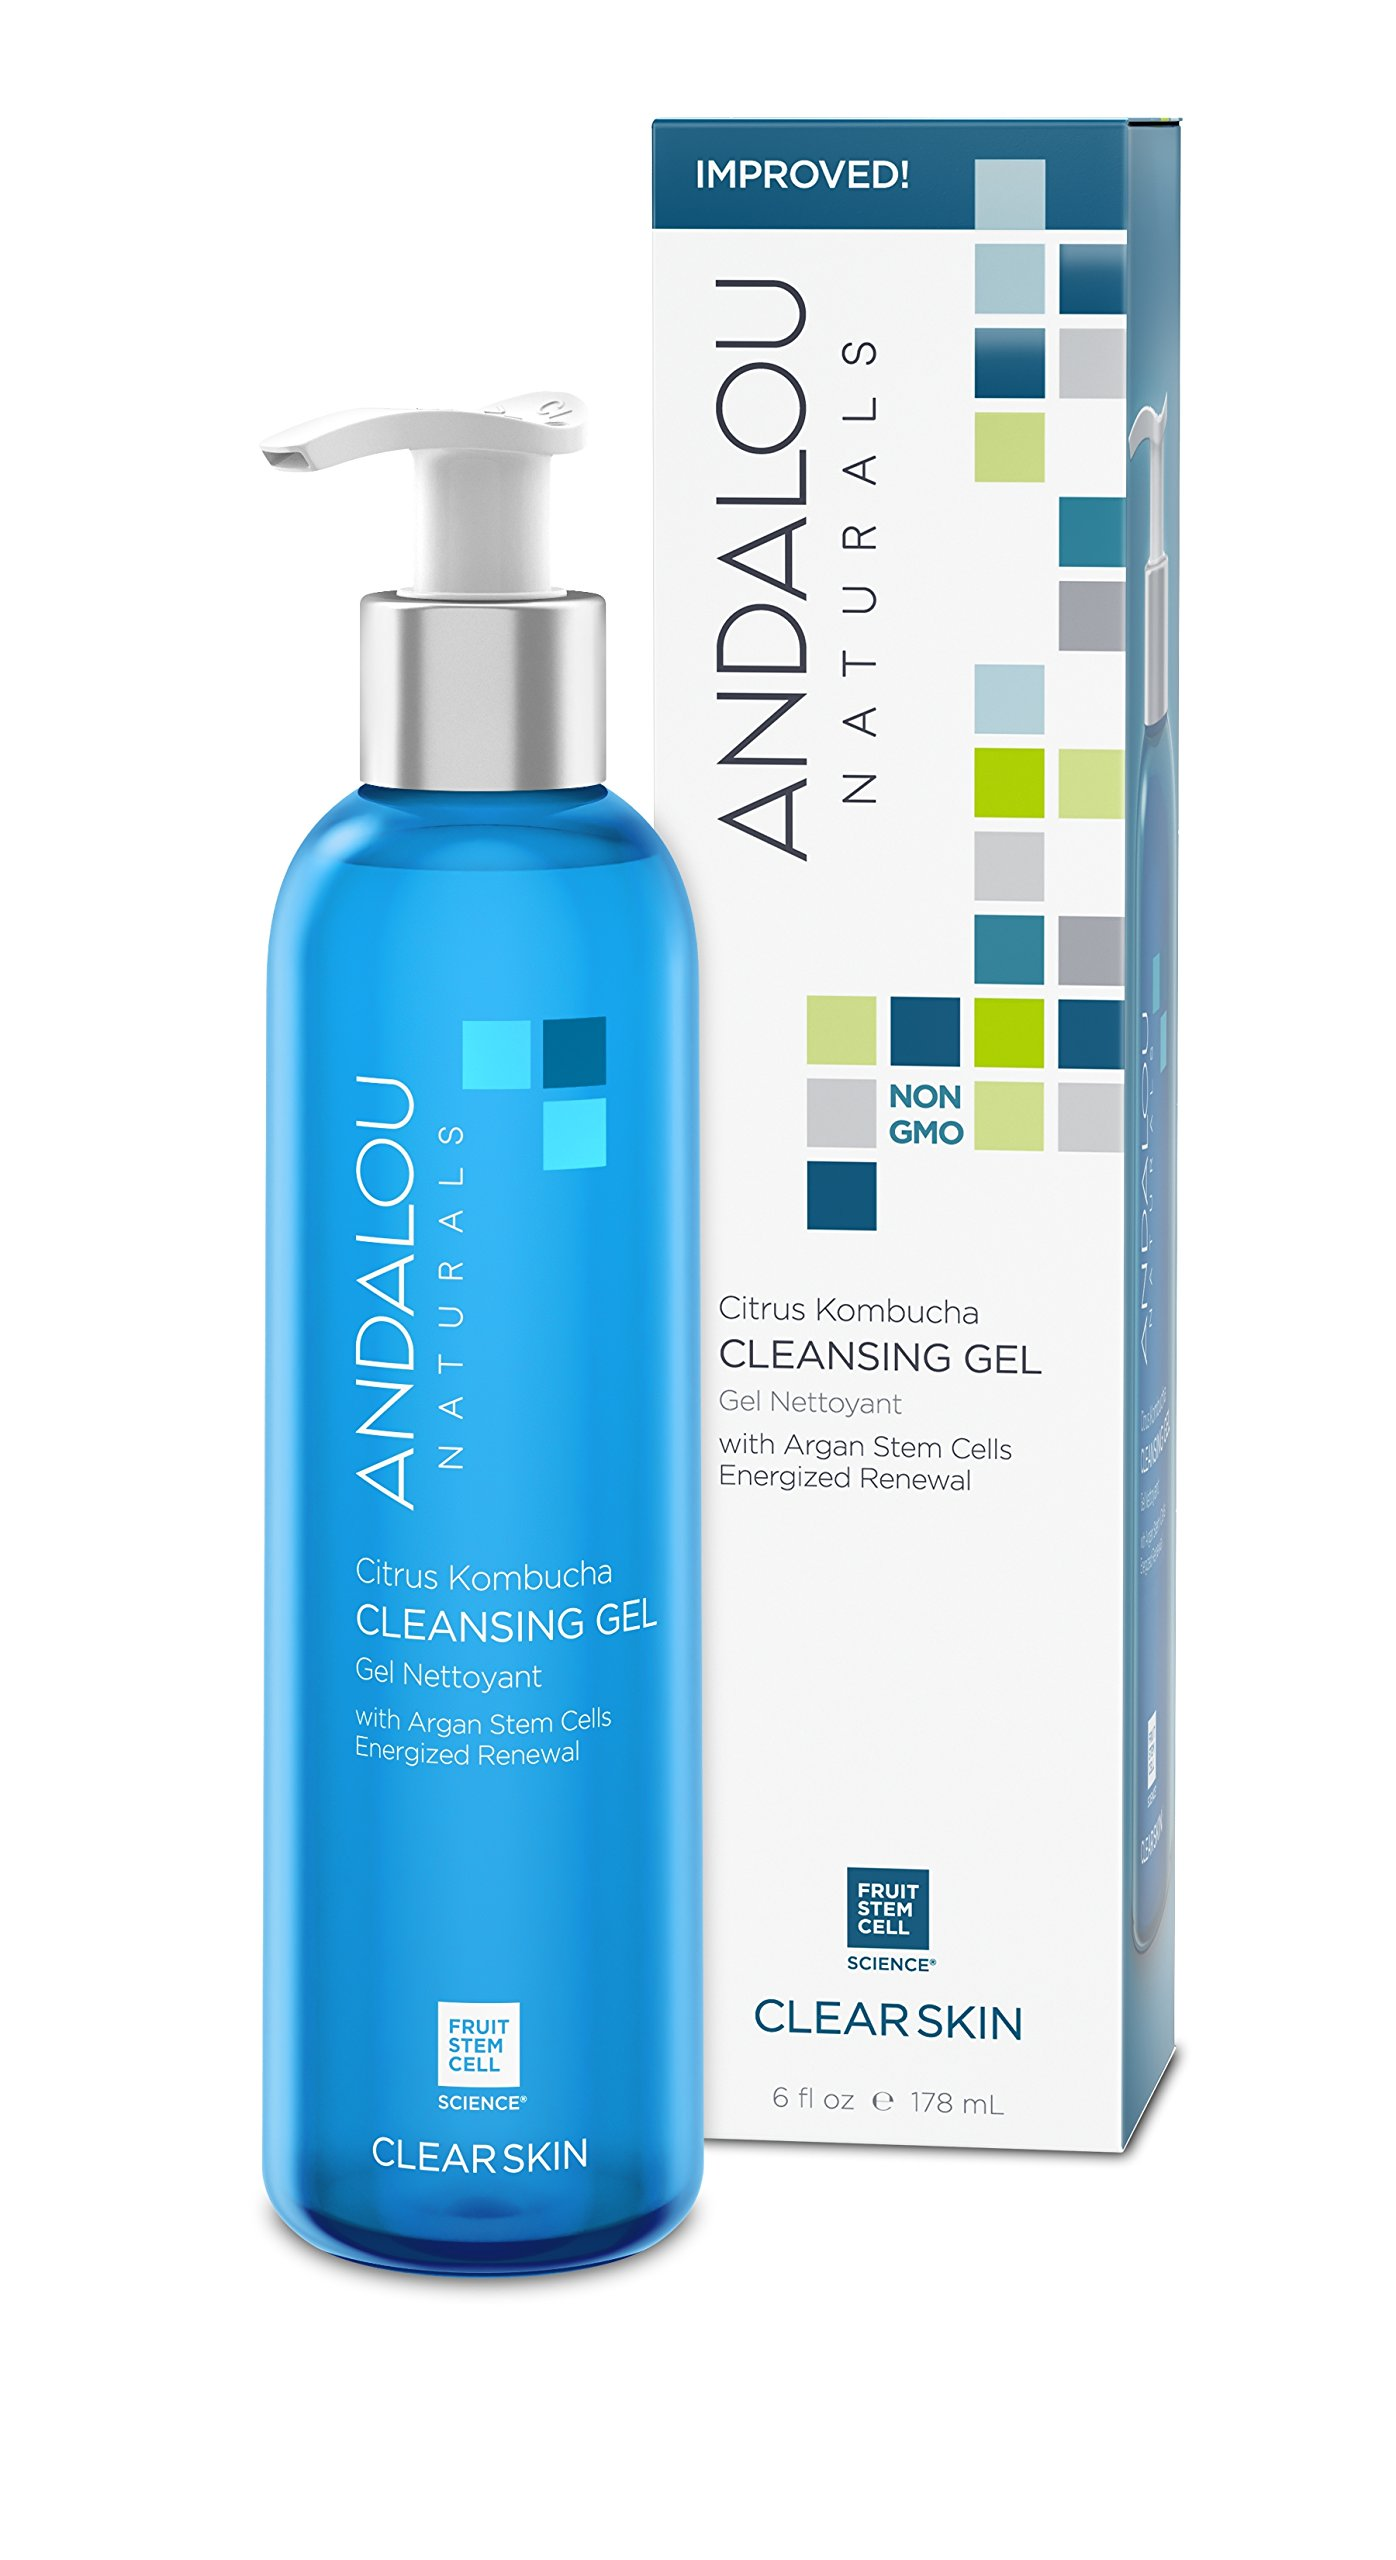 Andalou Naturals Citrus Kombucha Cleansing Gel, 6 oz, For Oily or Overreactive Skin, Helps Clarify & Cleanse Pores for a Glowing Complexion